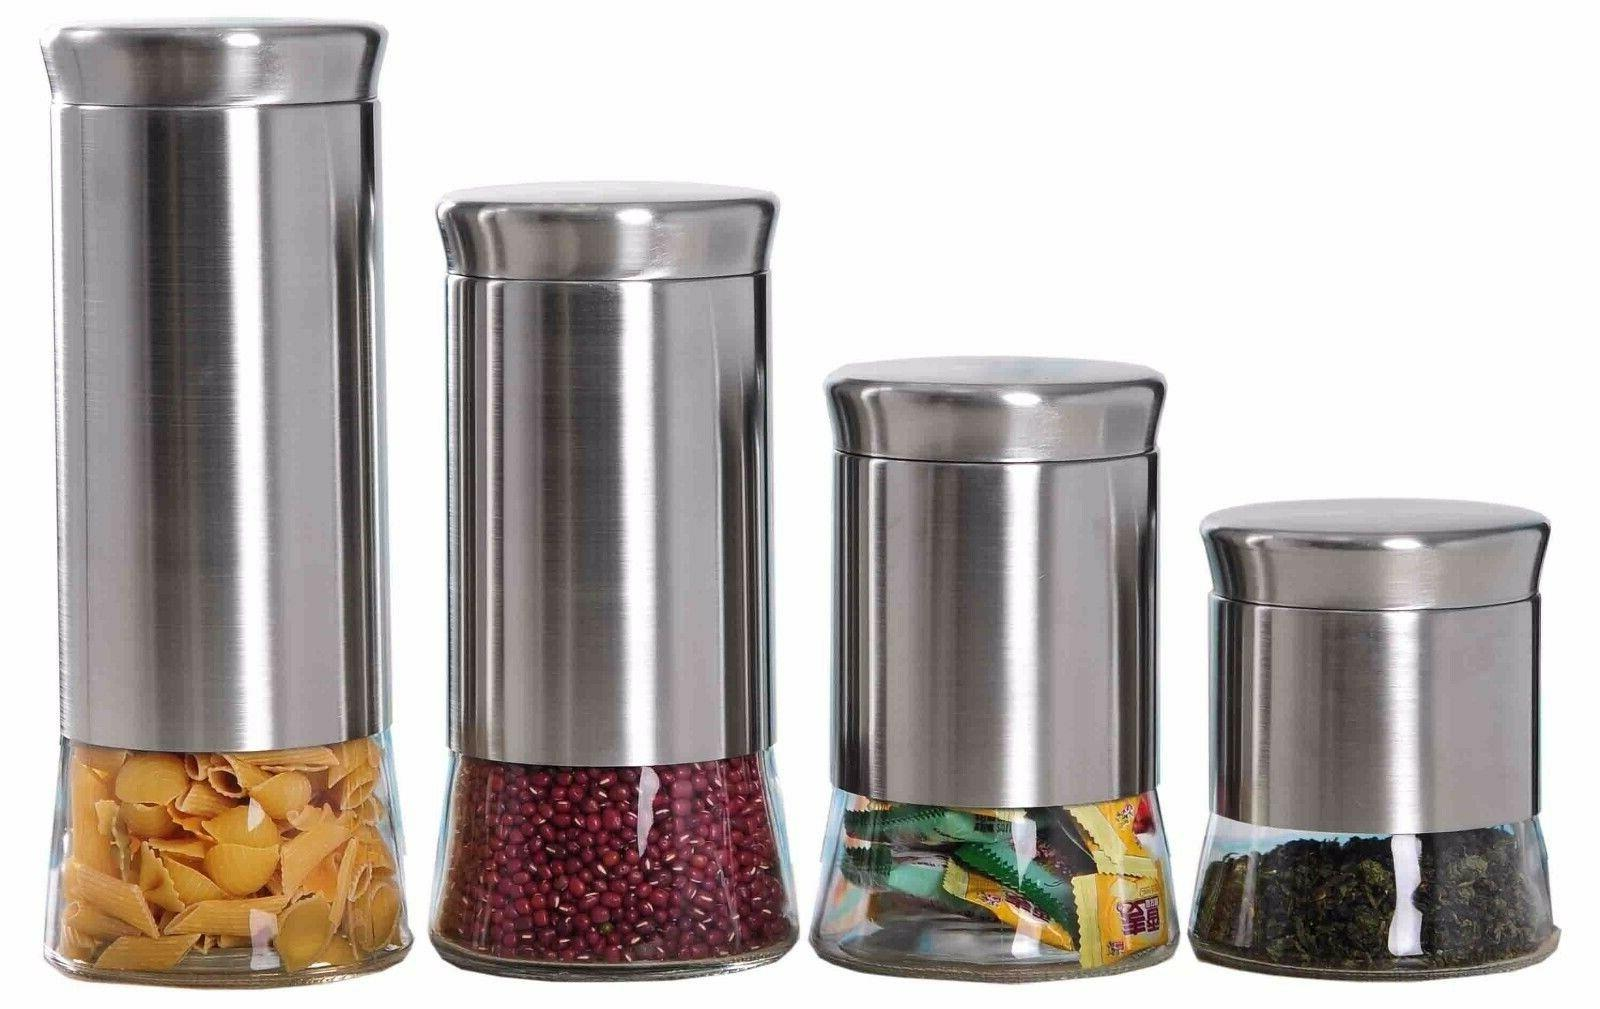 Home Basic NEW 4 Piece Essence Canister Stainless Steel Food